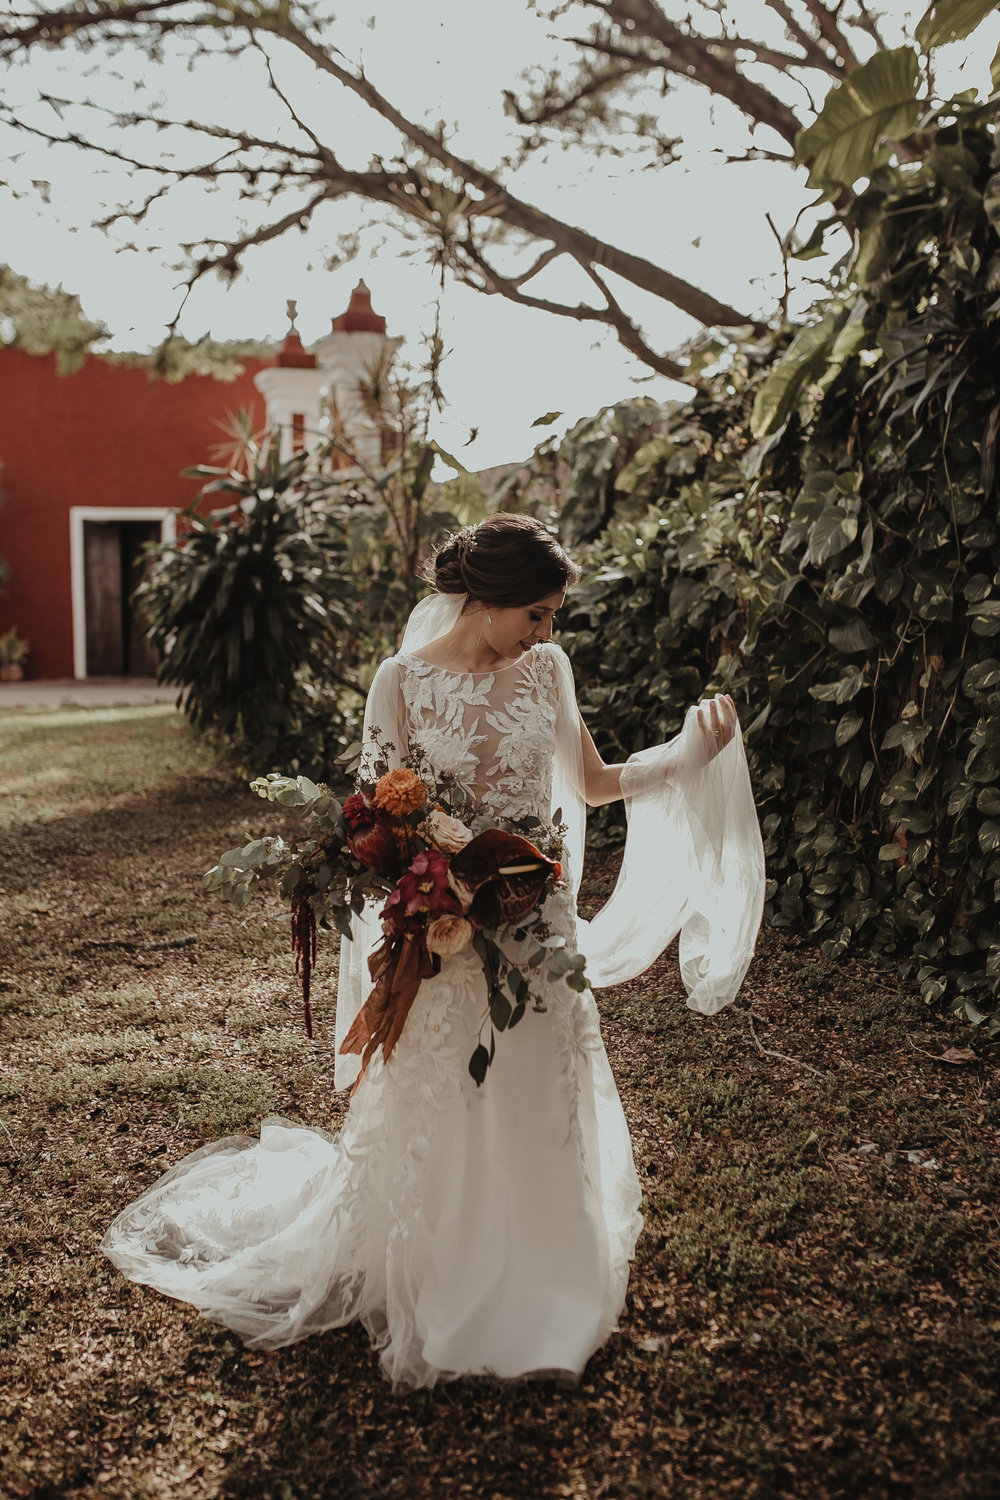 0221p&a_Hacienda__WeddingDestination_Weddingmerida_BodaMexico_FotografoDeBodas_WeddingGay.jpg